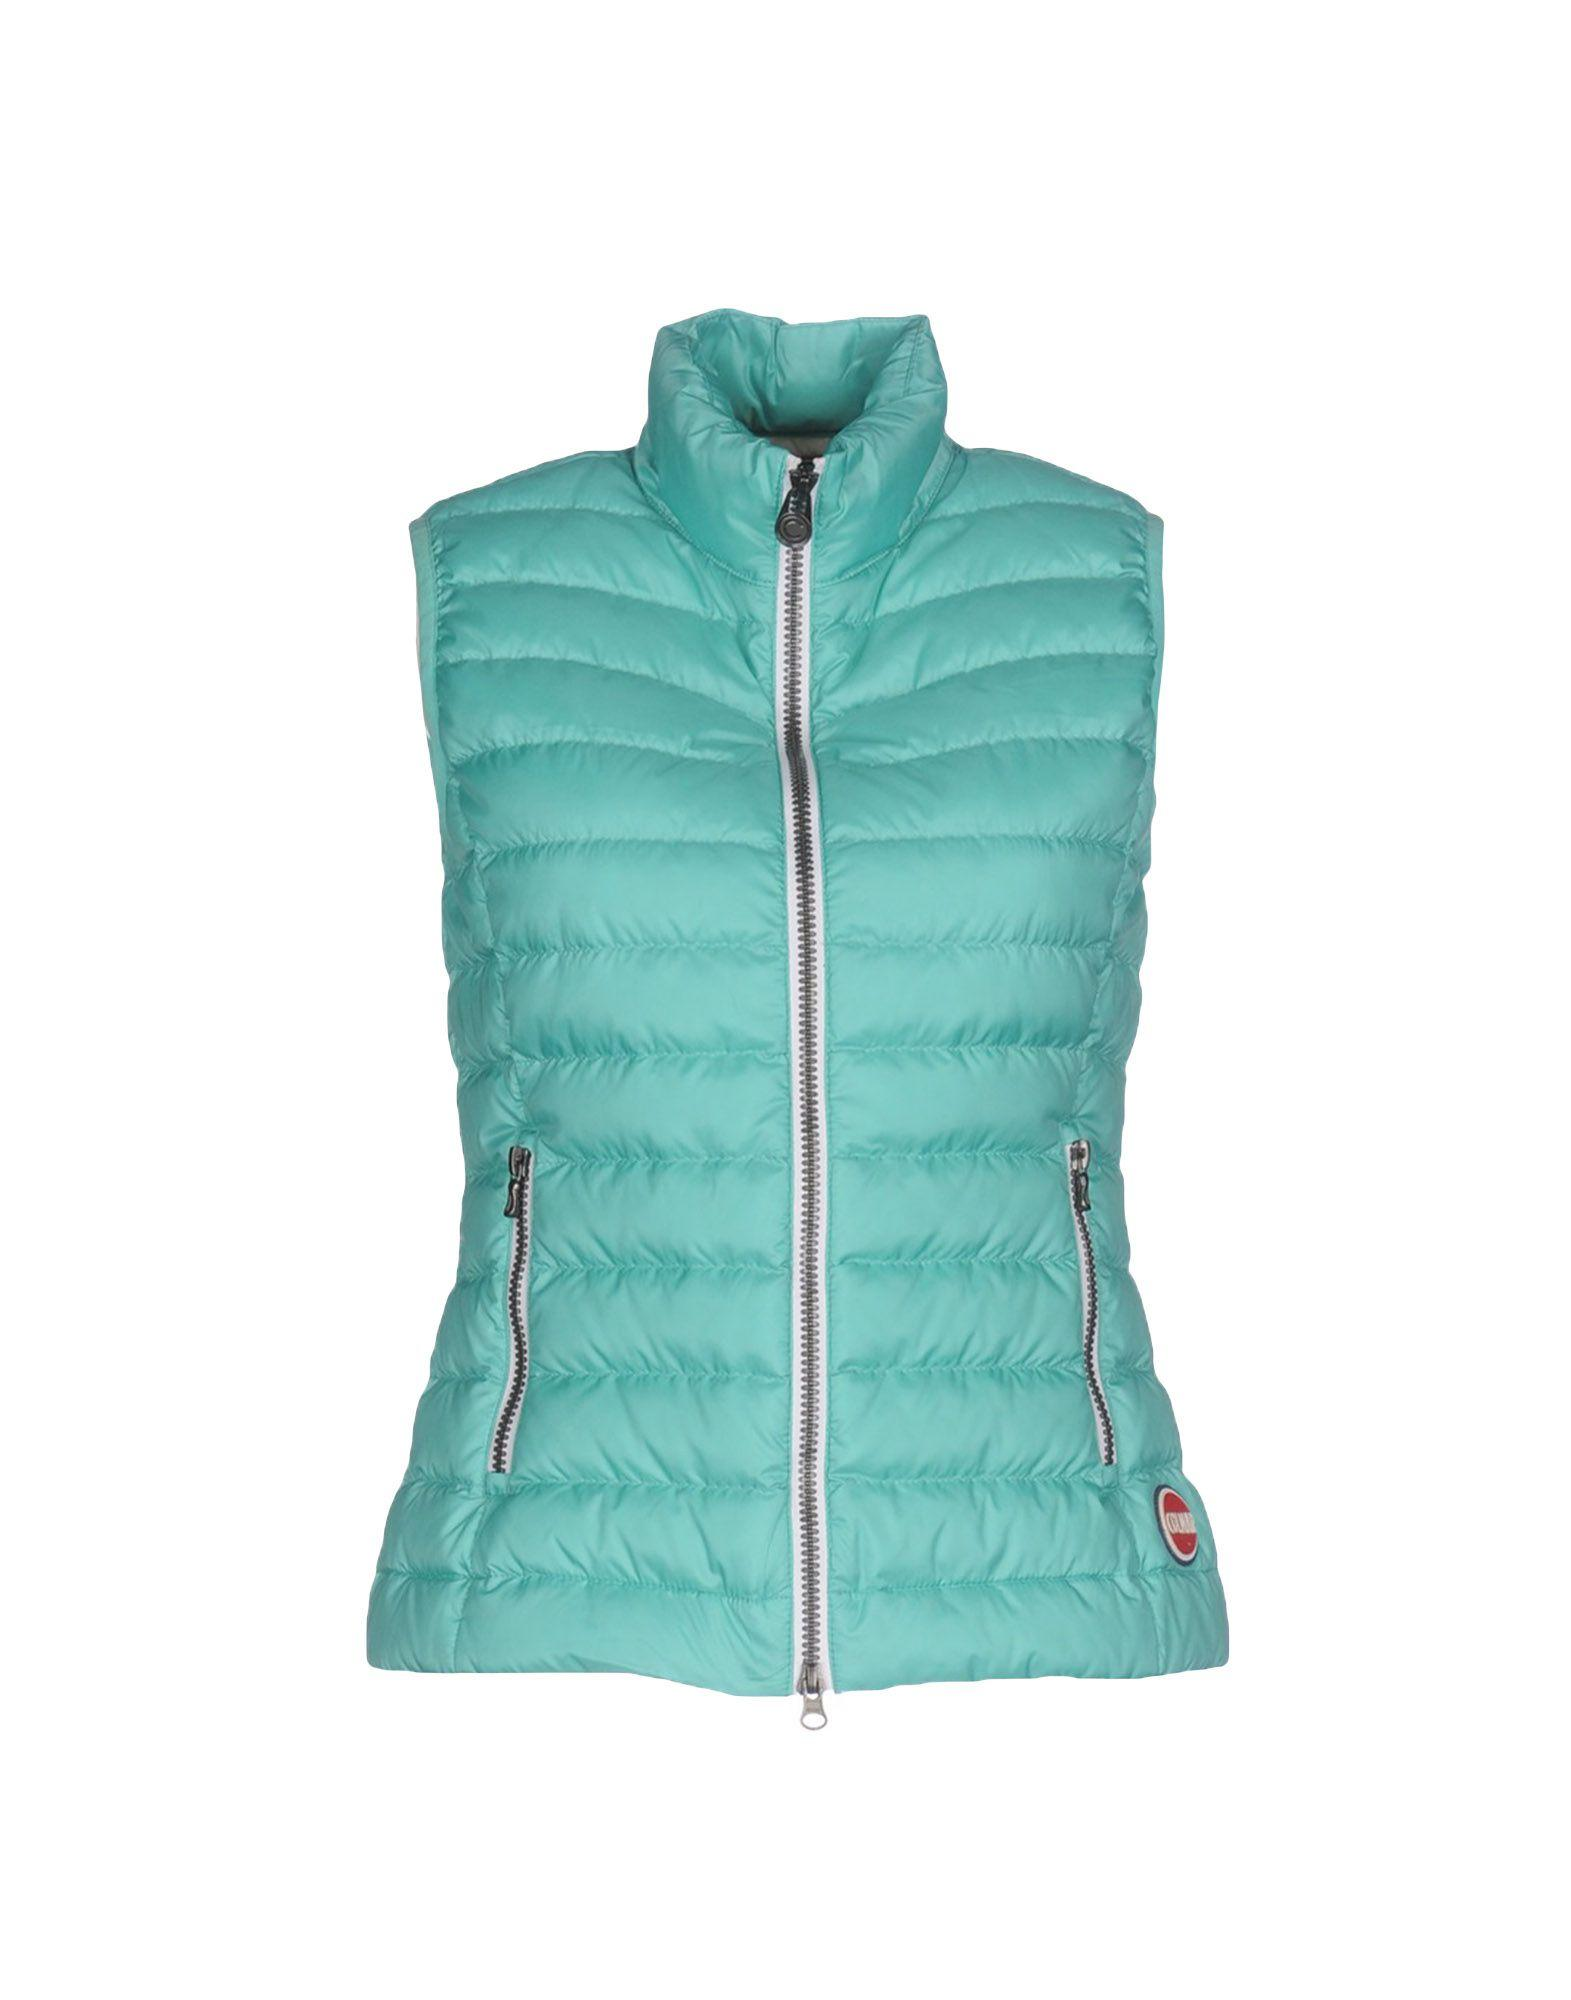 Colmar Originals Down Jacket In Turquoise